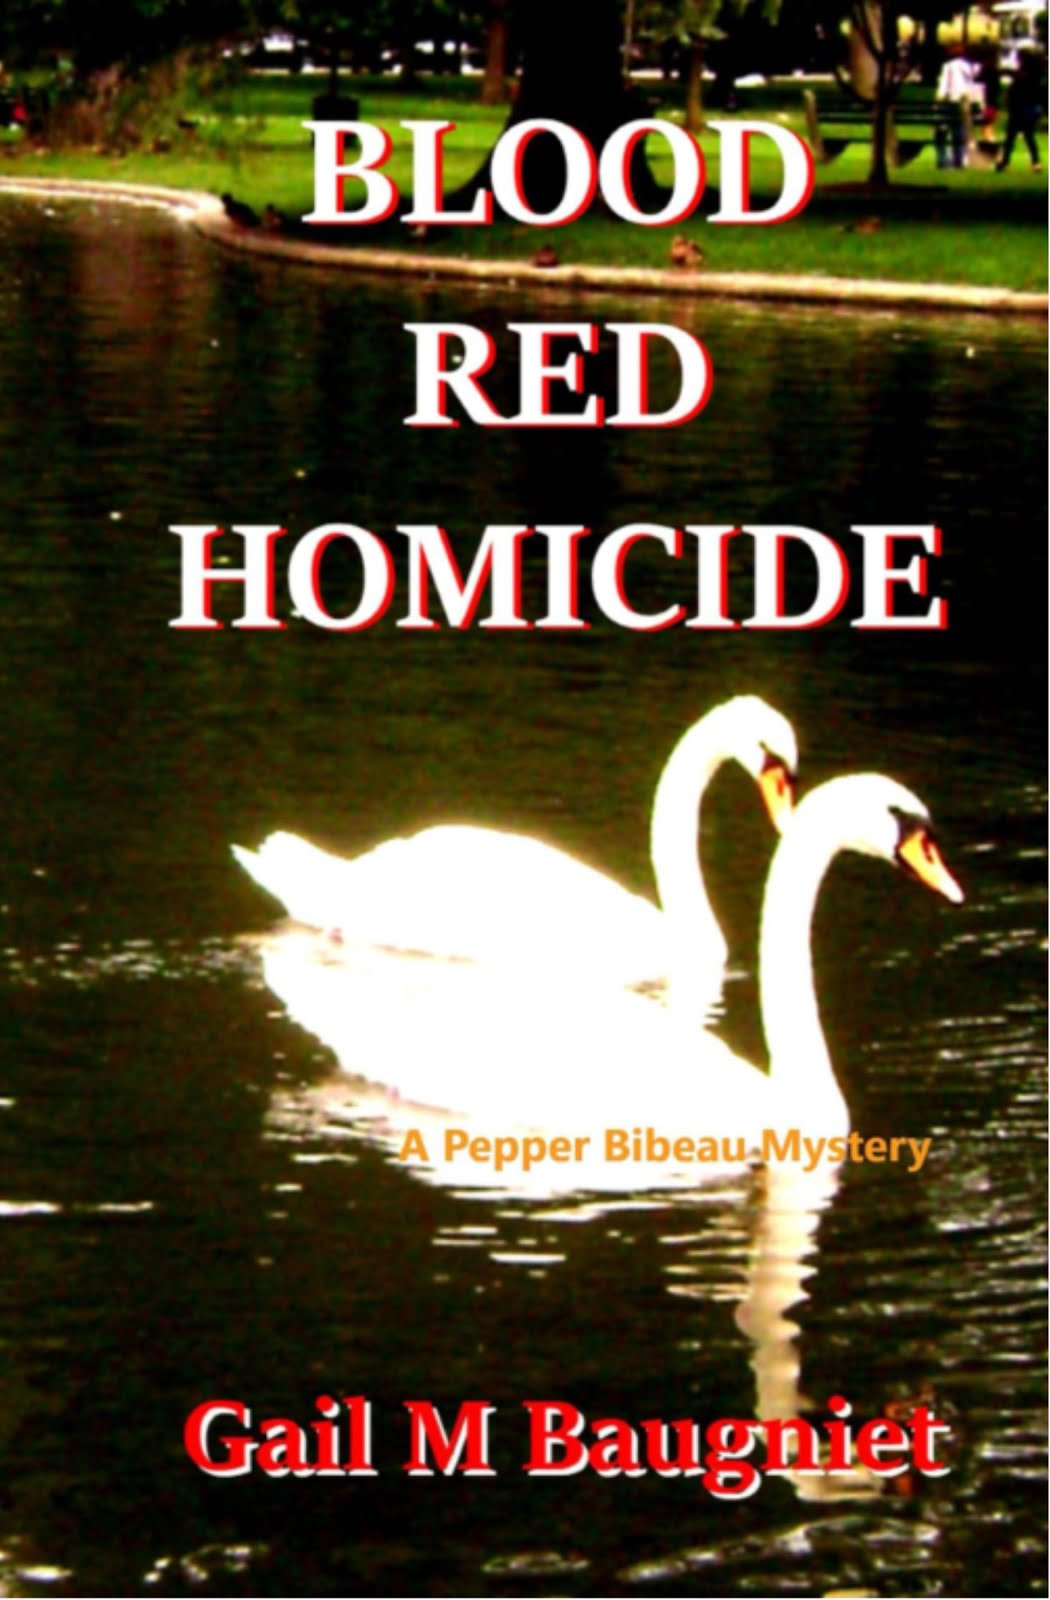 *** RED HOT MYSTERY ***  SET IN A SWINGING TOWN